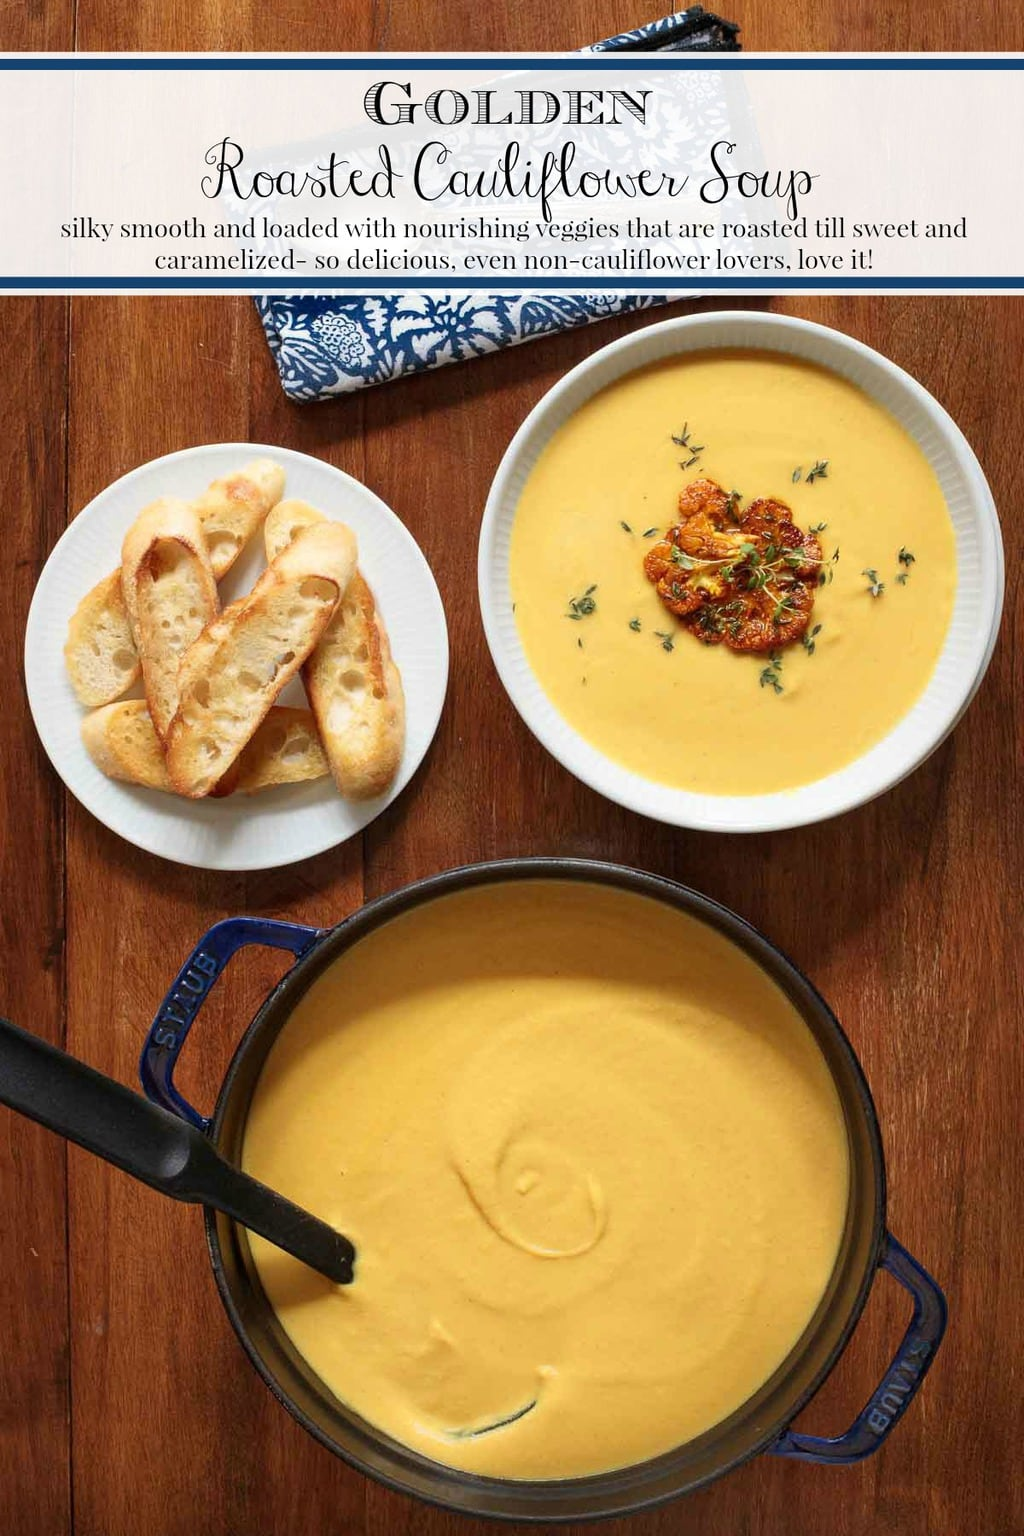 This nourishing Golden Roasted Cauliflower Soup is loaded with veggies that are roasted till sweet and caramelized - even non-cauliflower lovers, love it! #cauliflowersoup, #healthyvegetablesoup, #easycauliflowersoup, #roastedcauliflowersoup